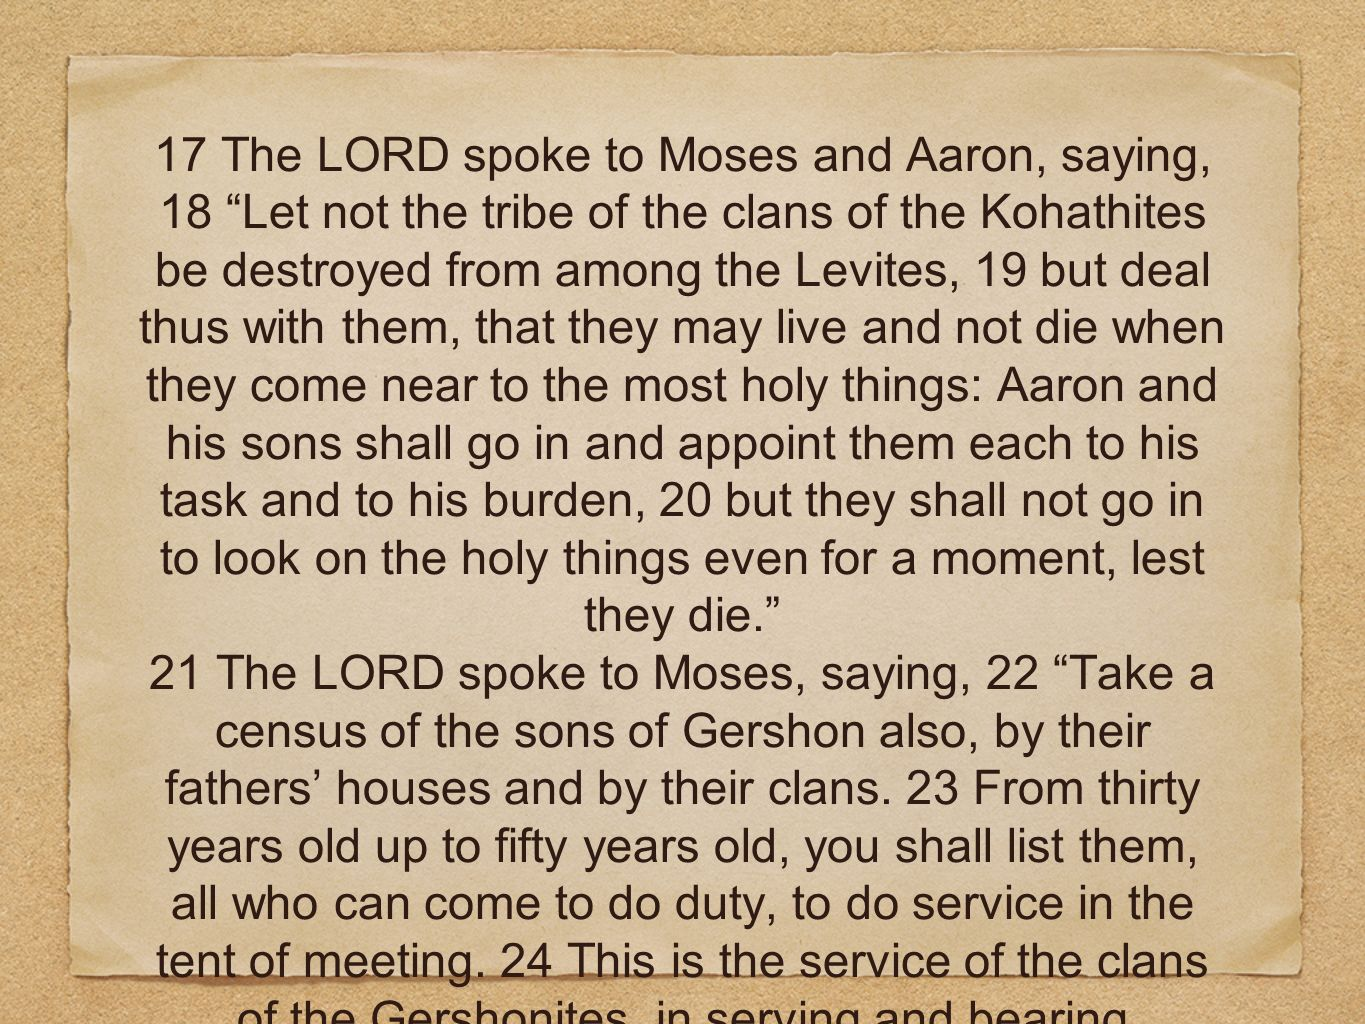 17 The LORD spoke to Moses and Aaron, saying, 18 Let not the tribe of the clans of the Kohathites be destroyed from among the Levites, 19 but deal thus with them, that they may live and not die when they come near to the most holy things: Aaron and his sons shall go in and appoint them each to his task and to his burden, 20 but they shall not go in to look on the holy things even for a moment, lest they die.